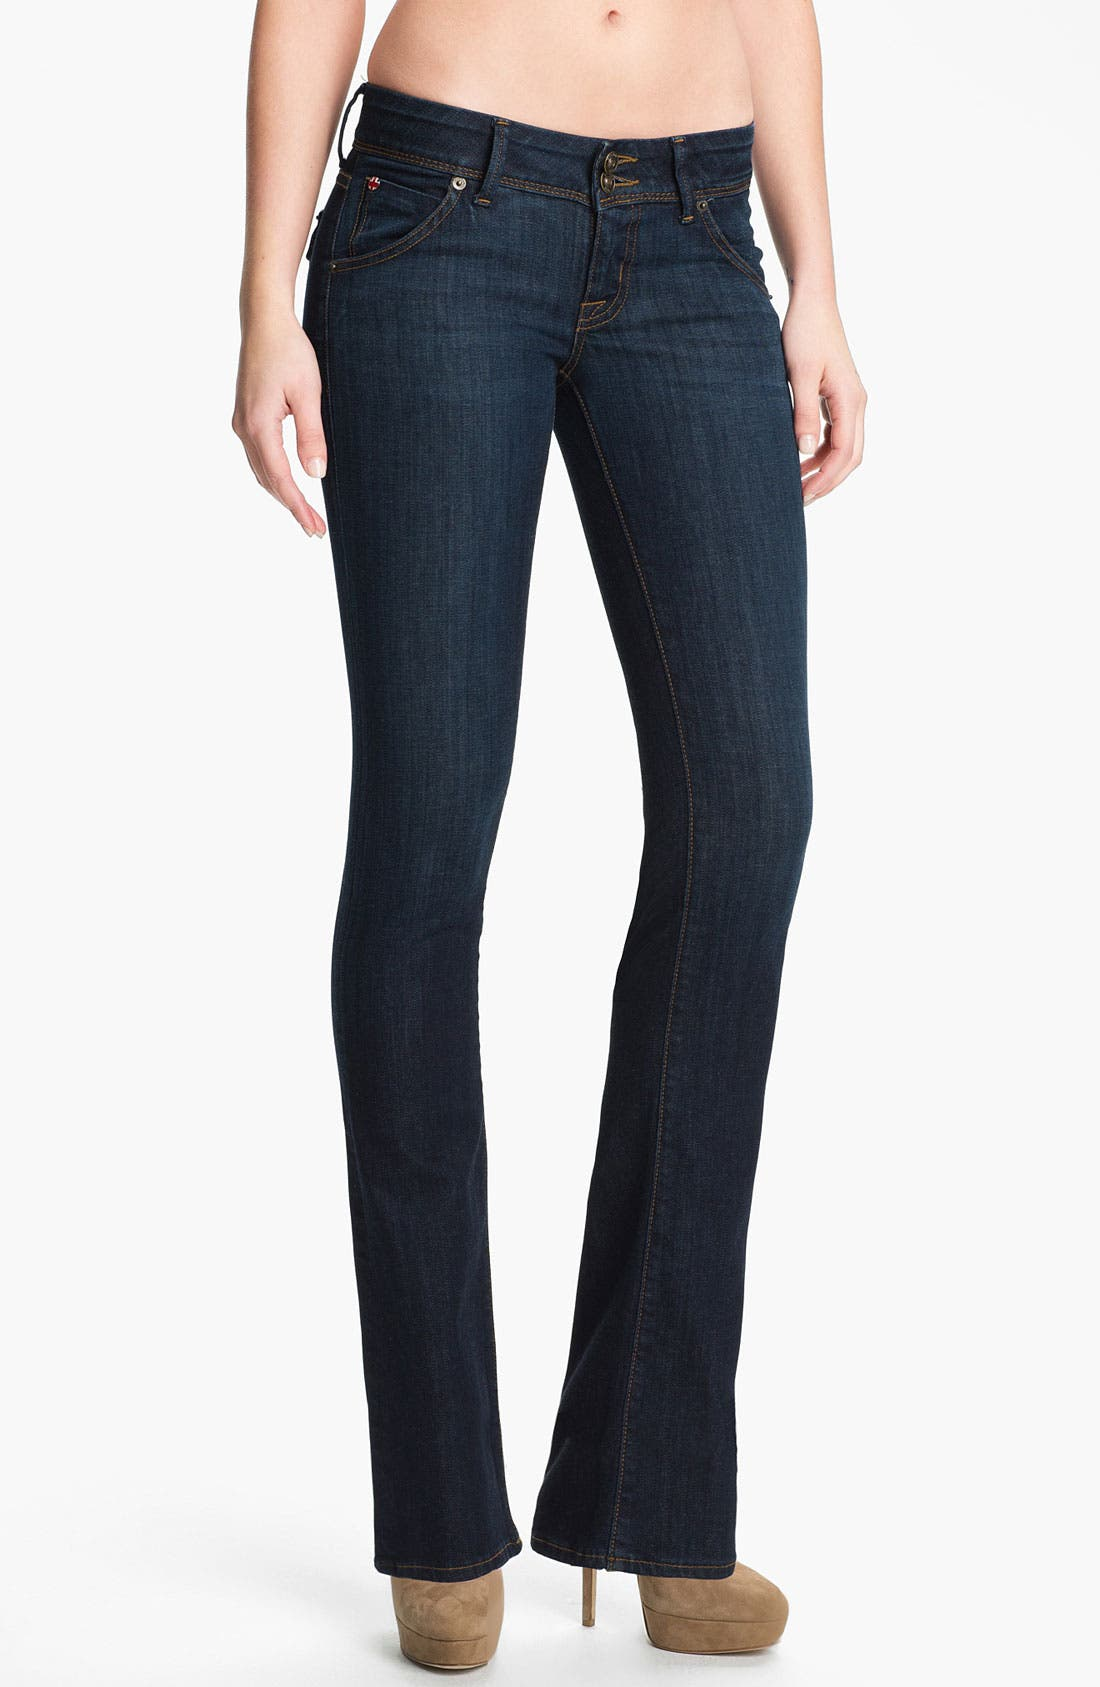 Main Image - Hudson Jeans 'Beth' Baby Bootcut Jeans (Rhea)